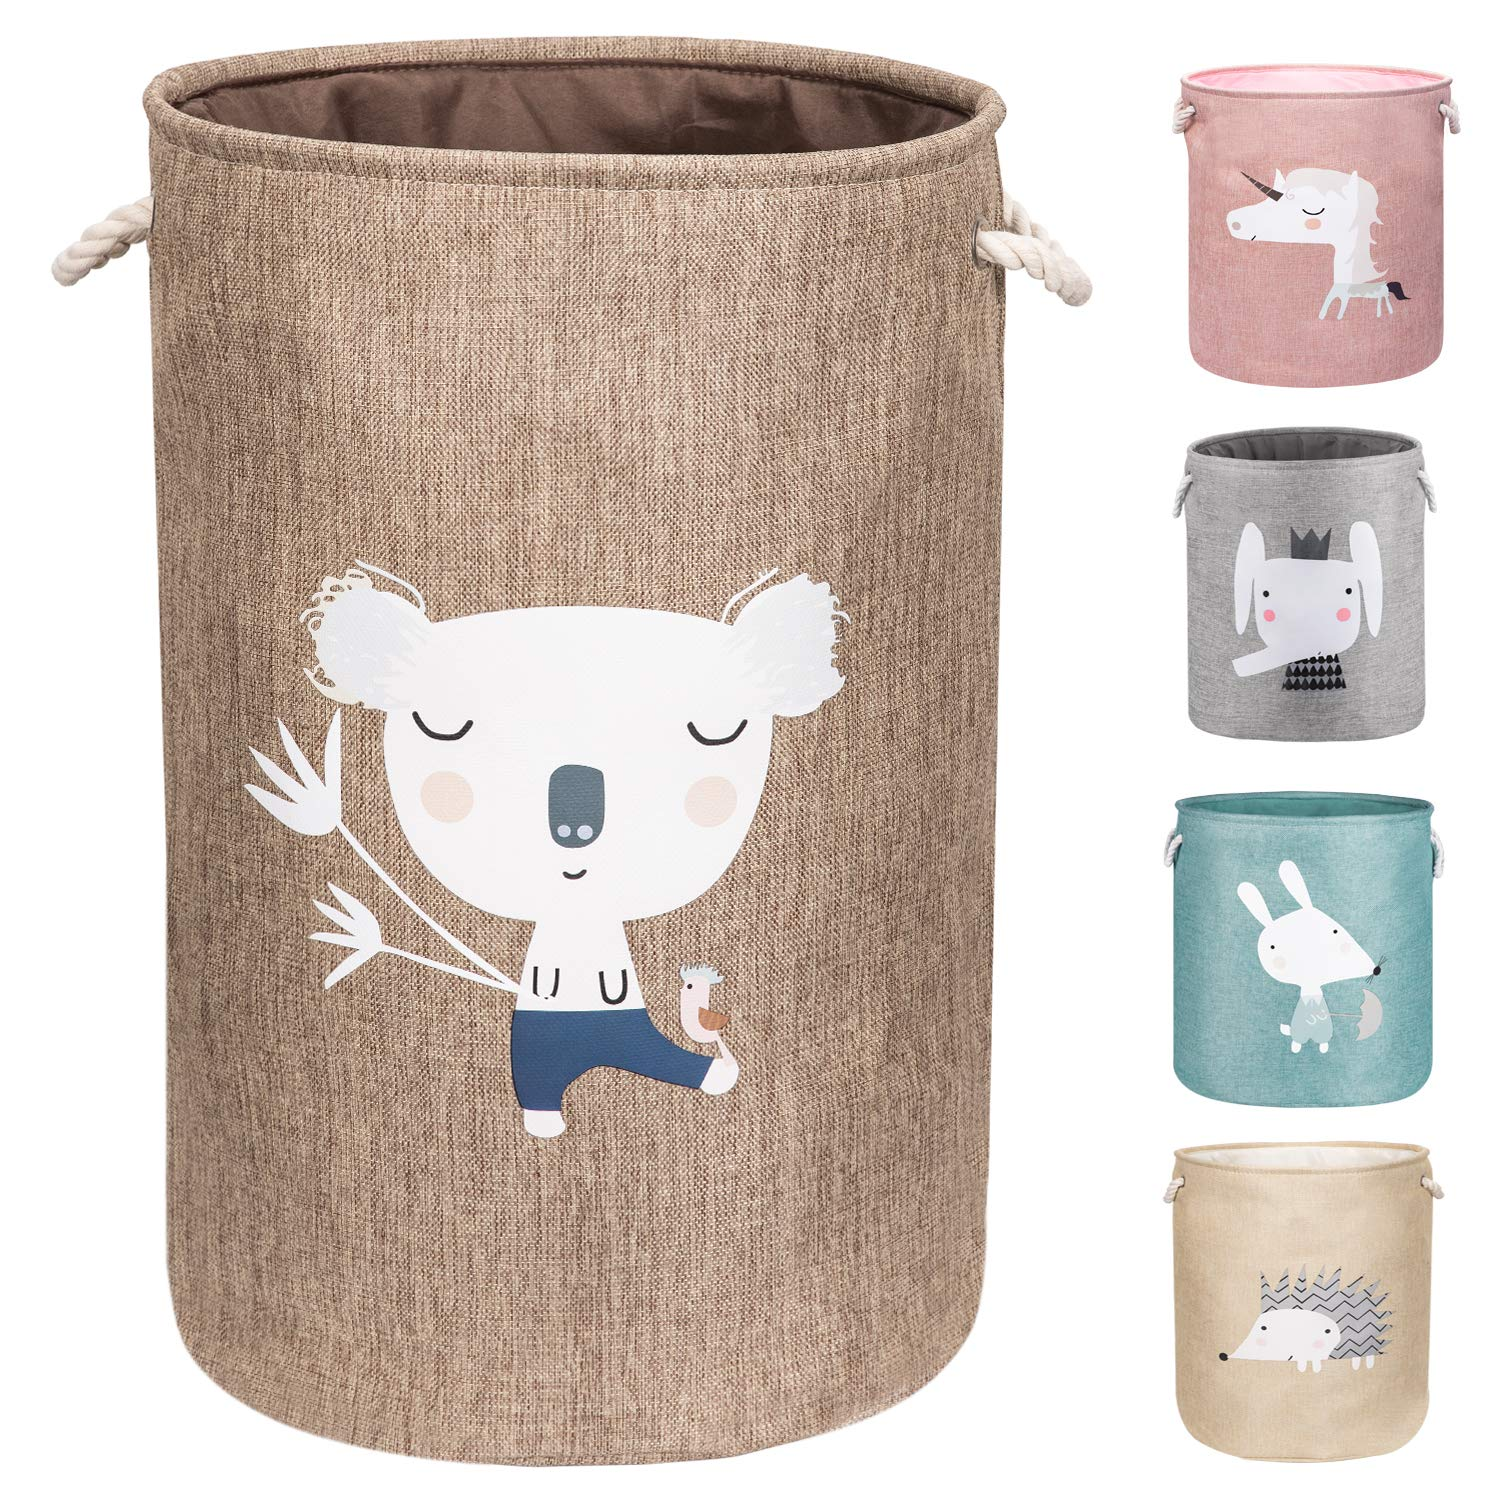 "AXHOP 22"" Upgrade Large Foldable Laundry Basket with Lid, Toy Storage Baskets for Kids, Dog, Toys, Clothes, Room Décor. Cute Animal Laundry Hamper (Koala)"